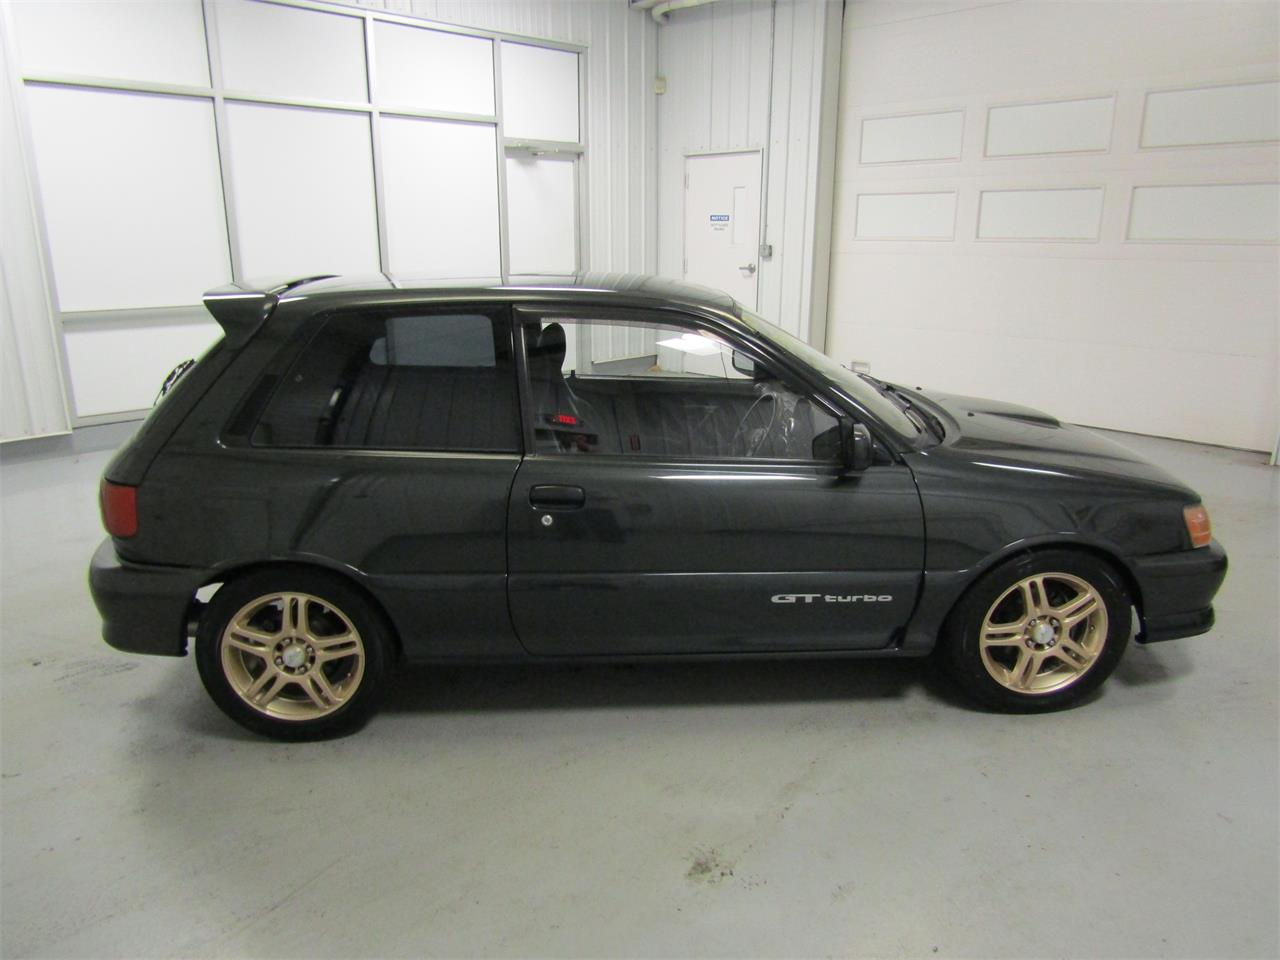 Large Picture of '90 Toyota Starlet located in Christiansburg Virginia - $10,900.00 - MO5C